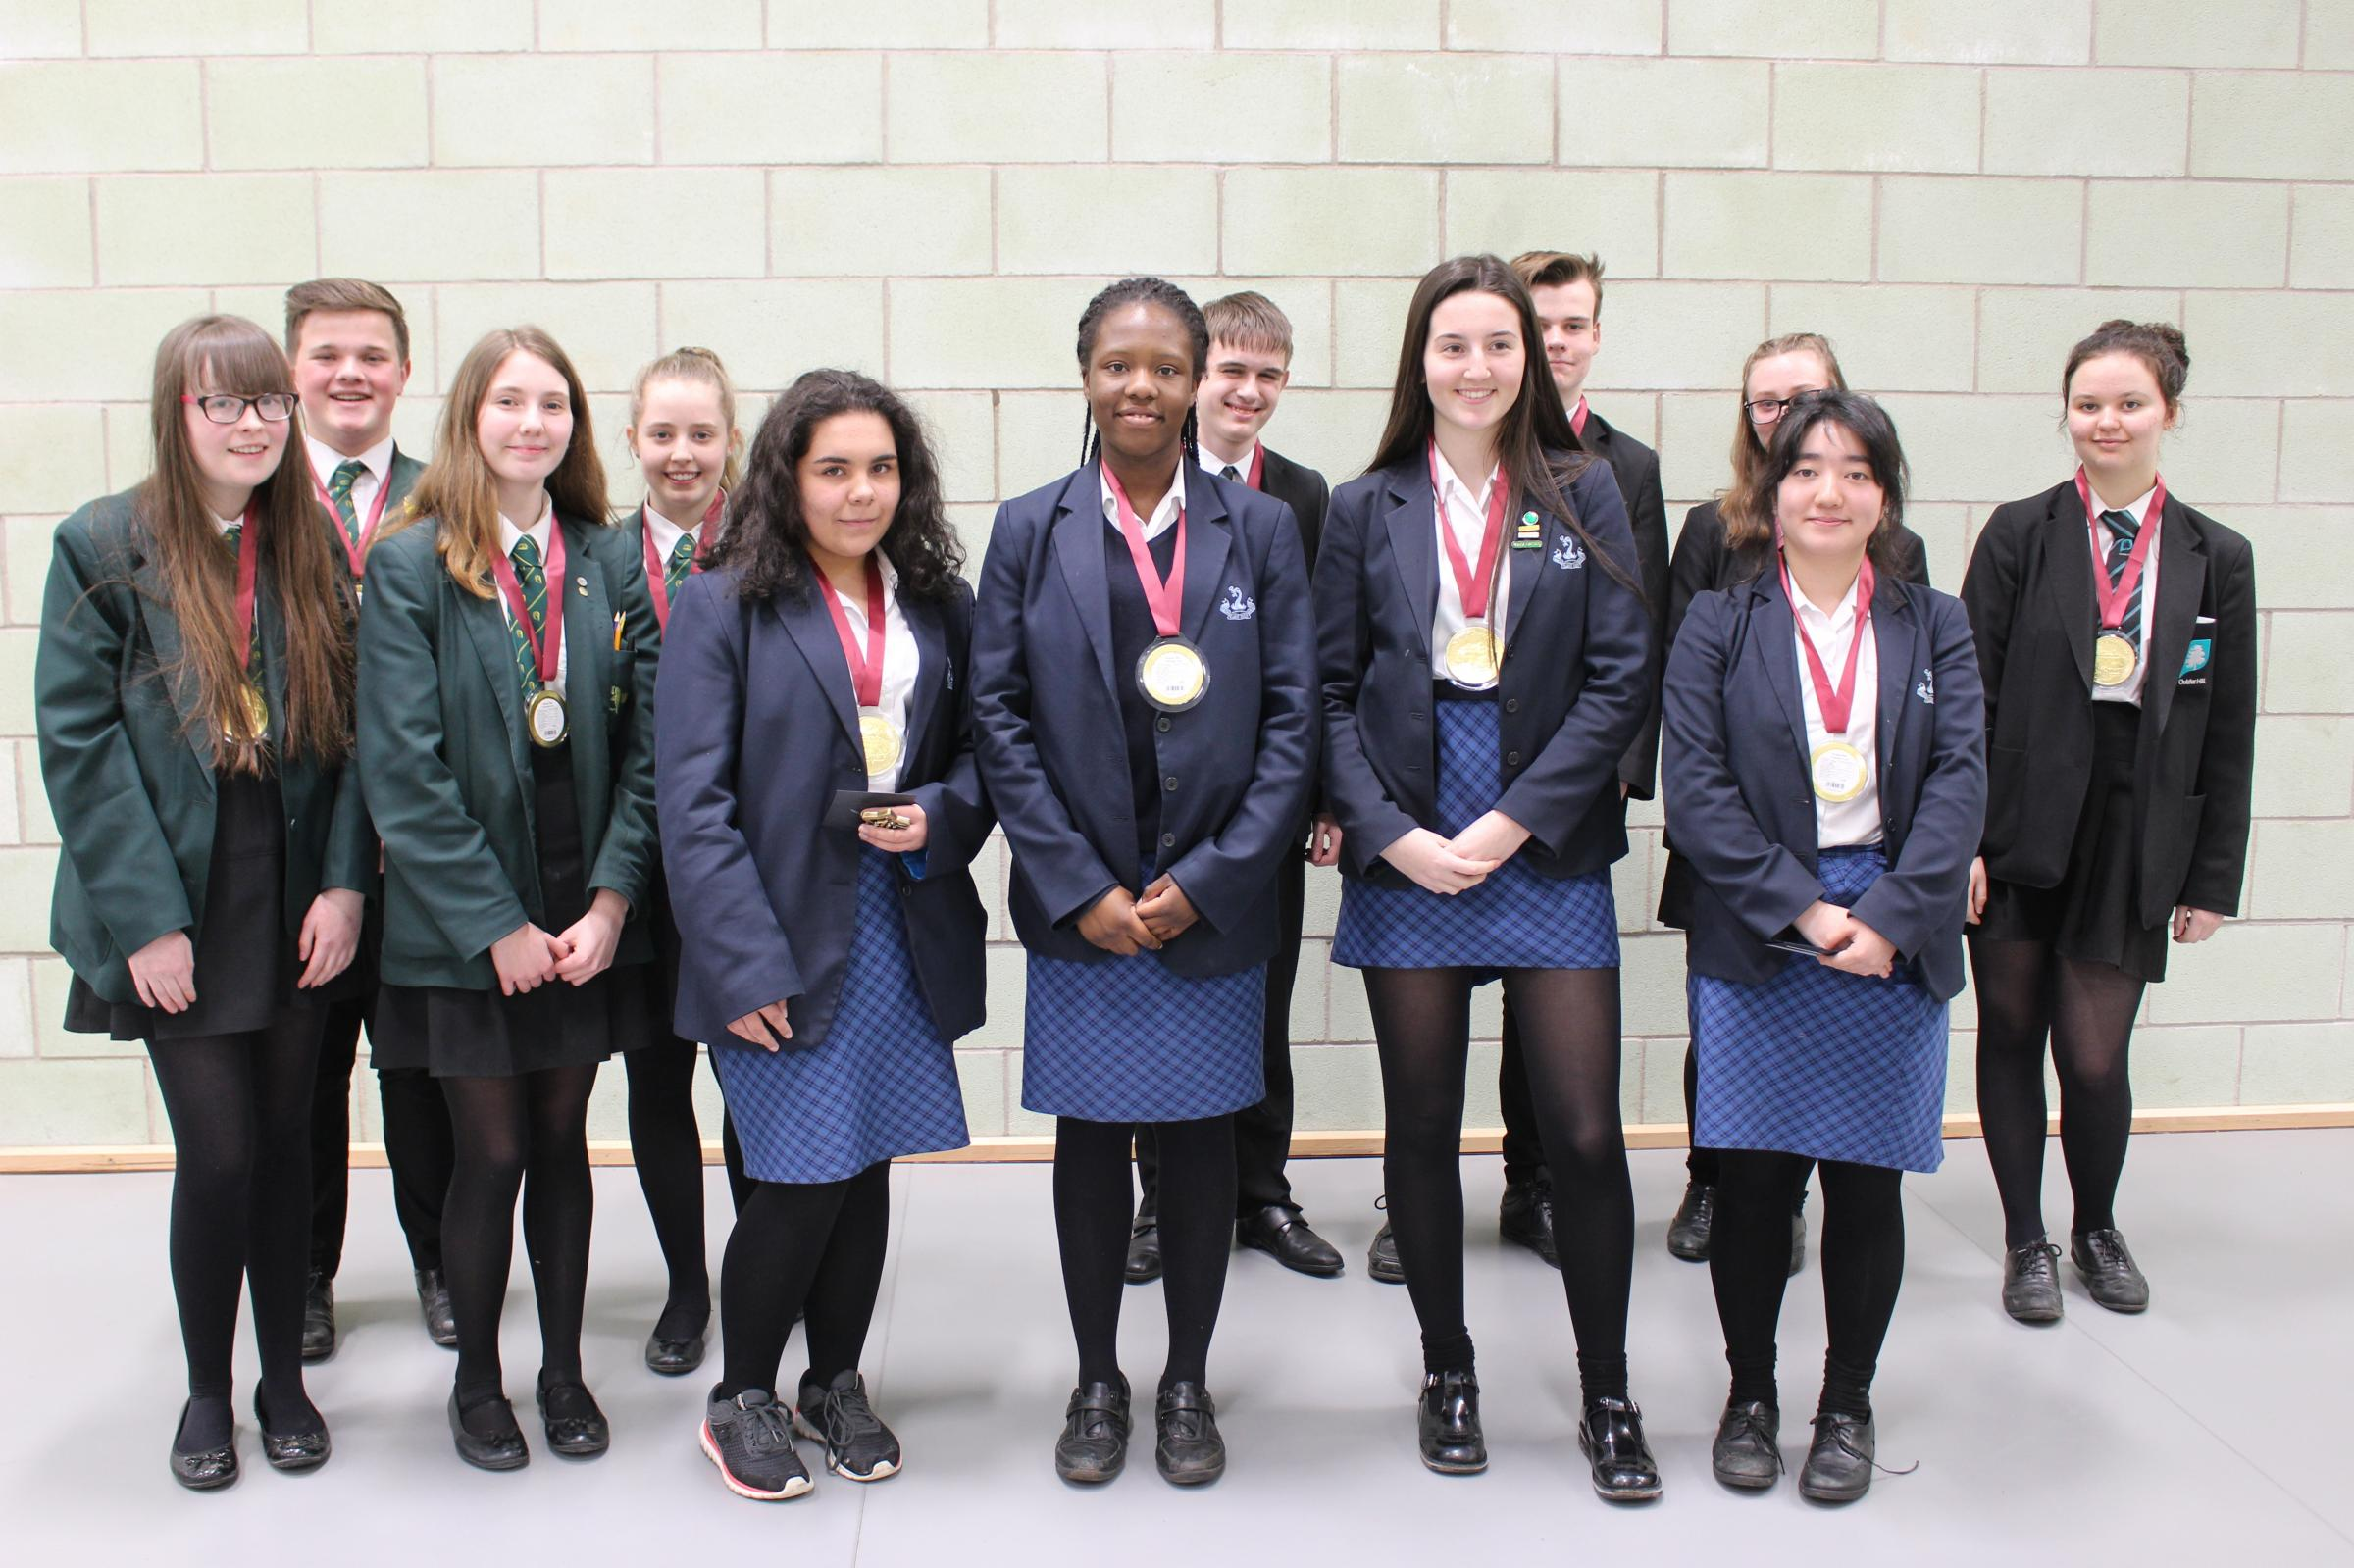 SUCCESSFUL: Bury Grammar School Girls secured first place, Wardle Academy second place and Oulder Hill third place